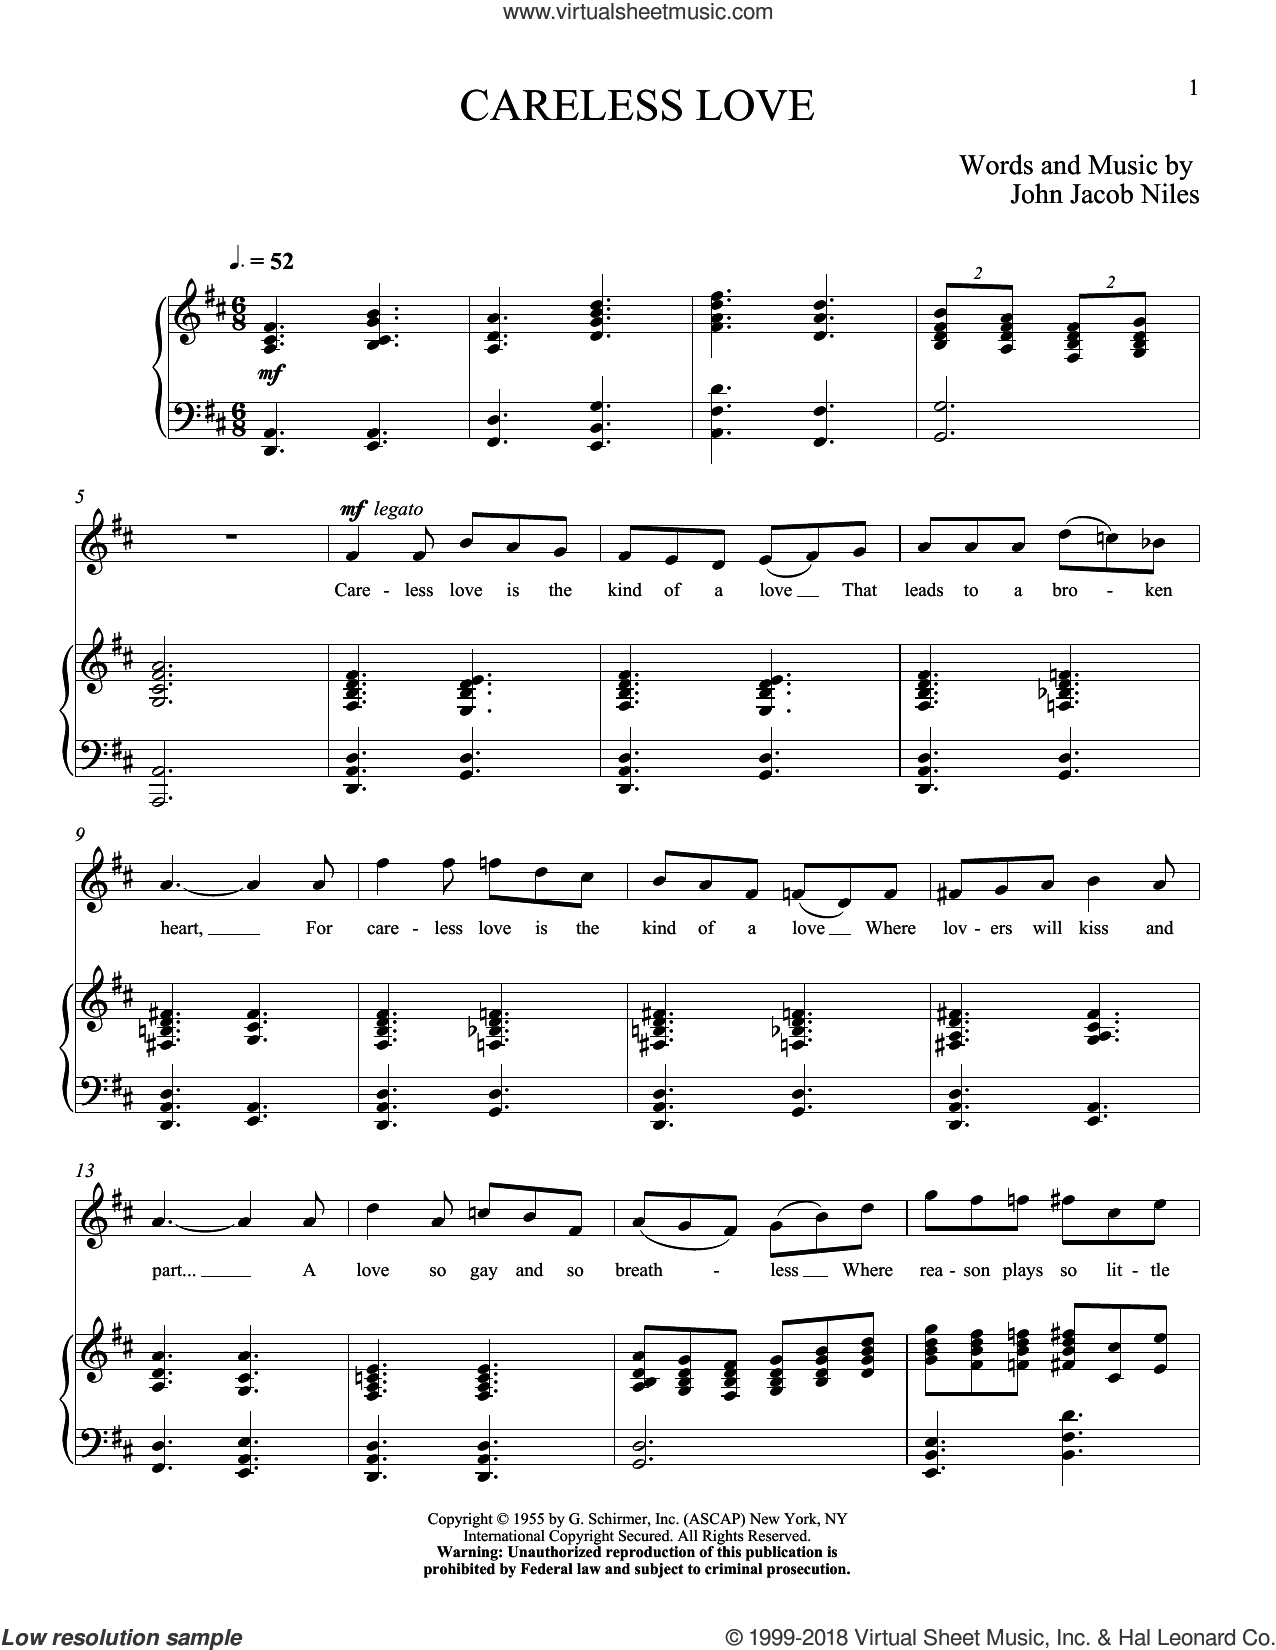 Careless Love sheet music for voice and piano (High ) by John Jacob Niles. Score Image Preview.